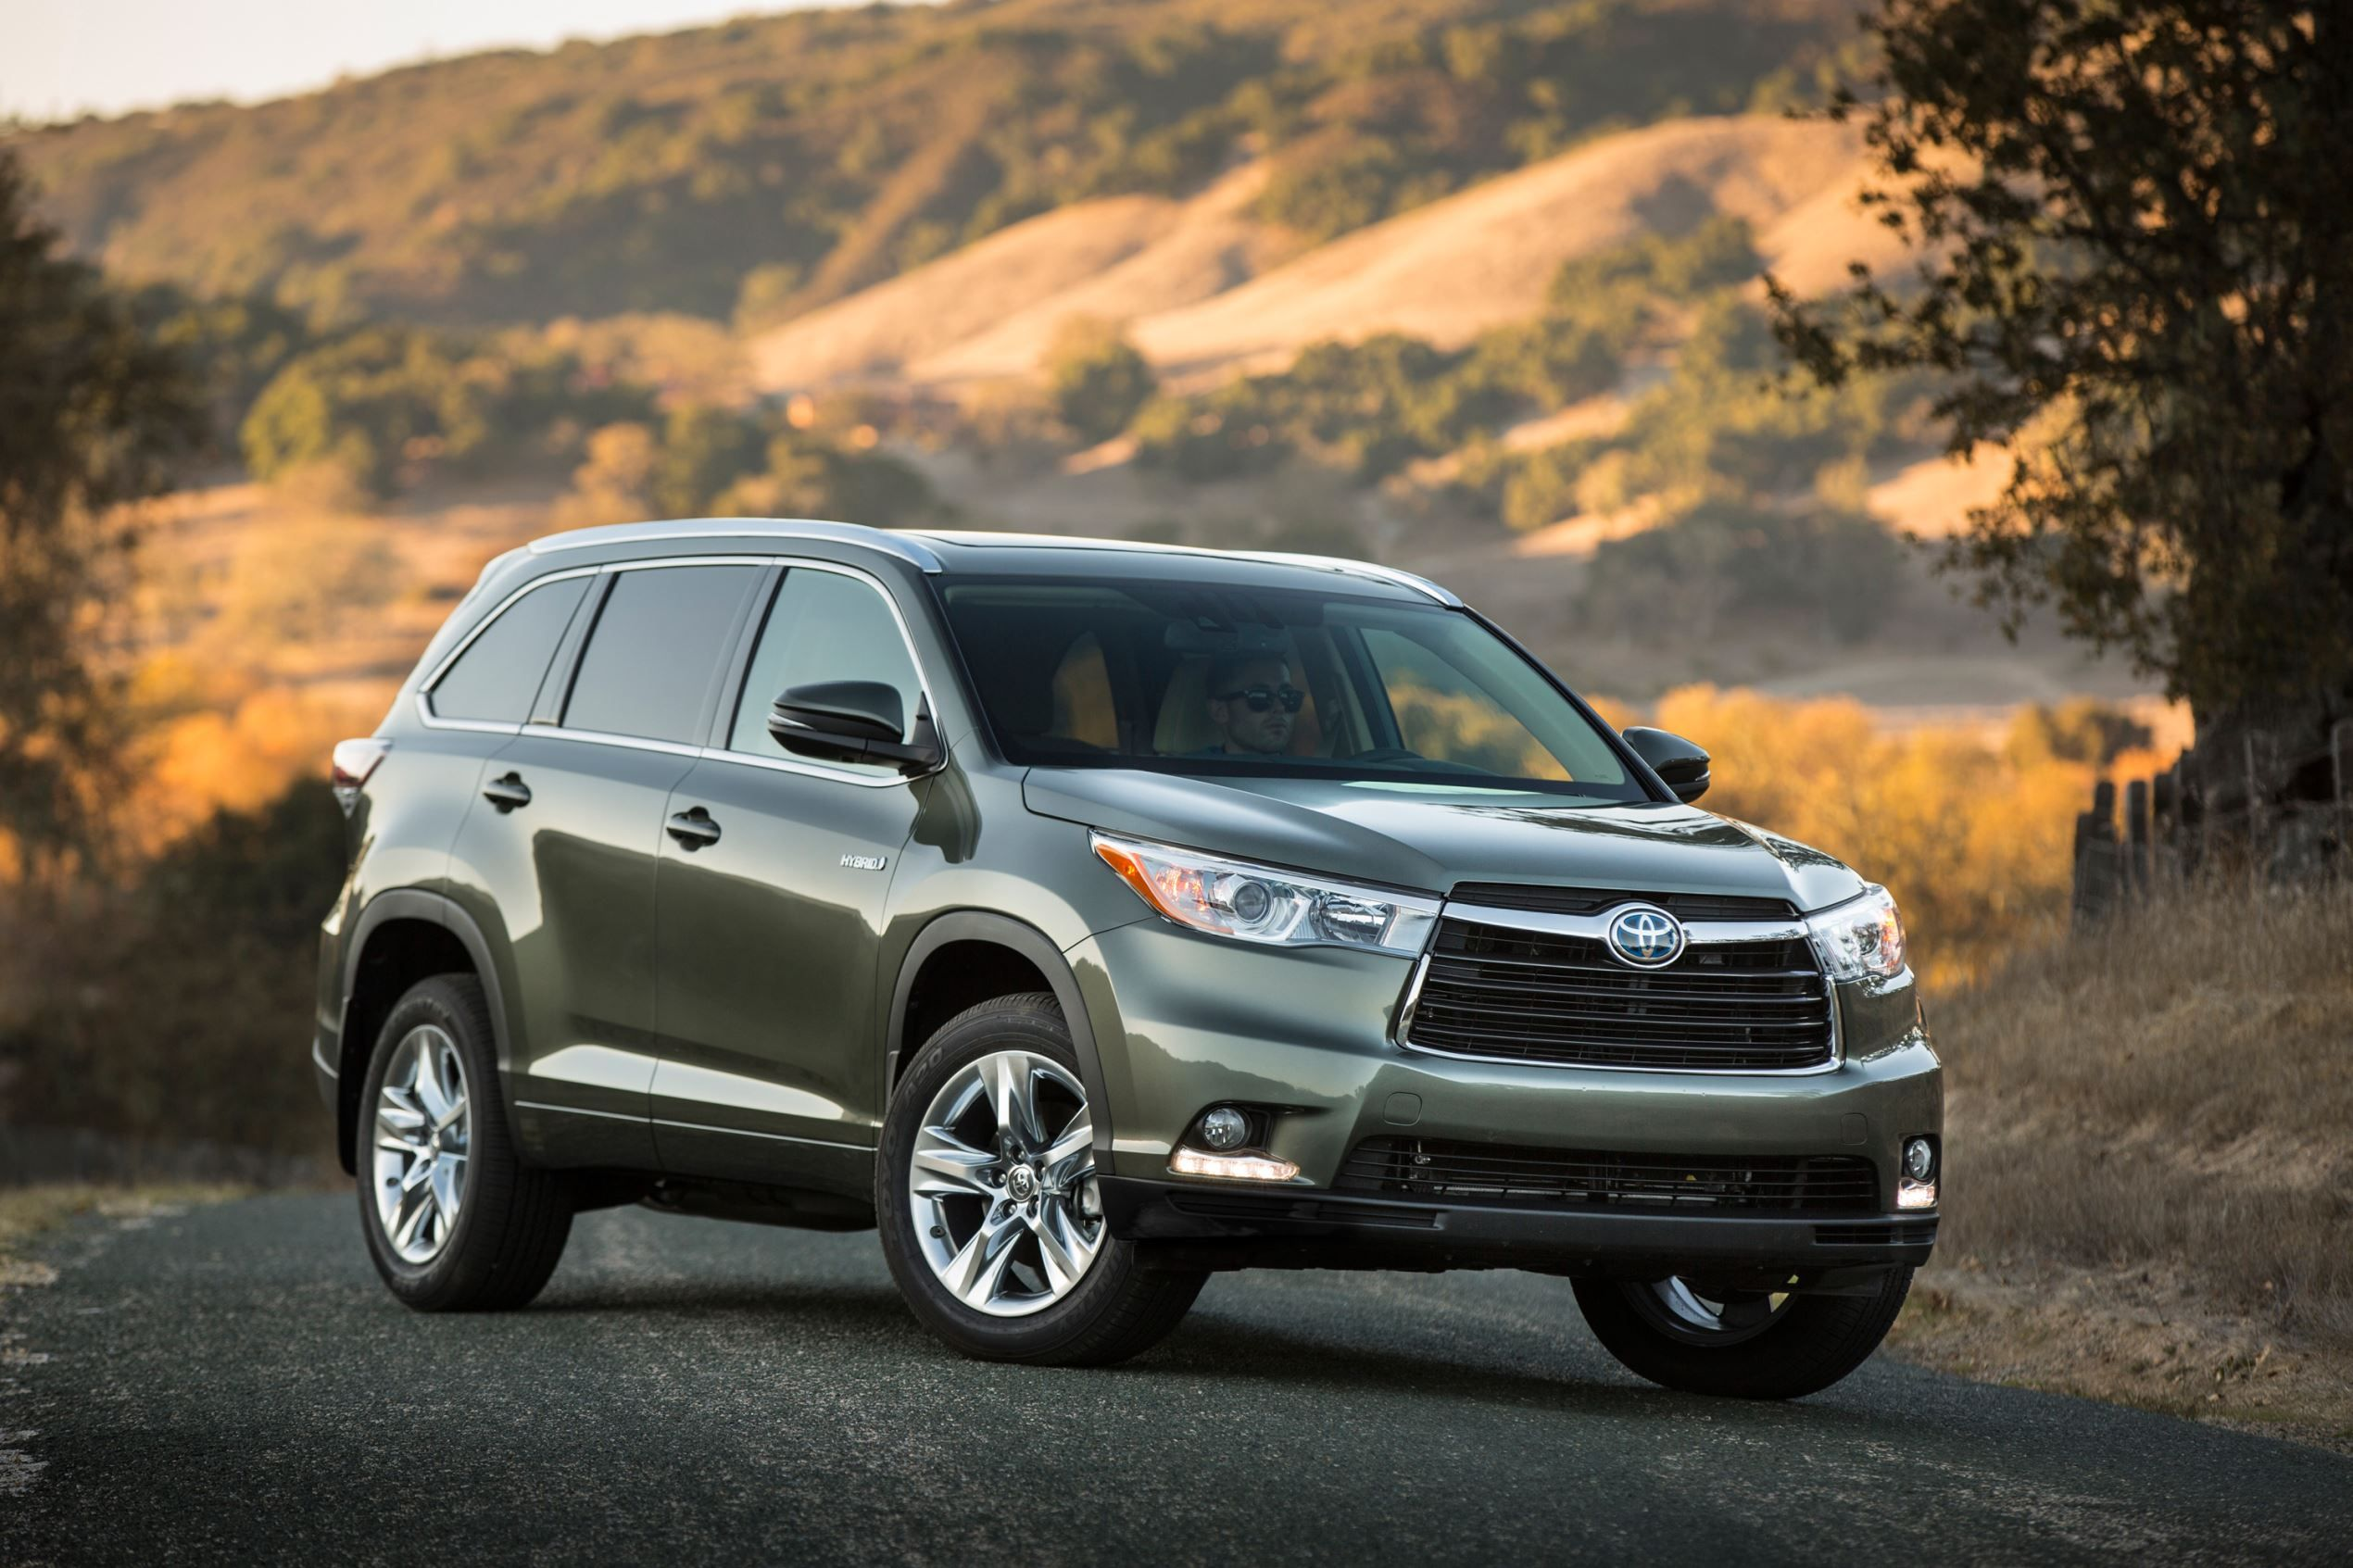 TOYOTA HIGHLANDER HYBRID 4WD 20 Most Fuel Efficient SUVs of 2015